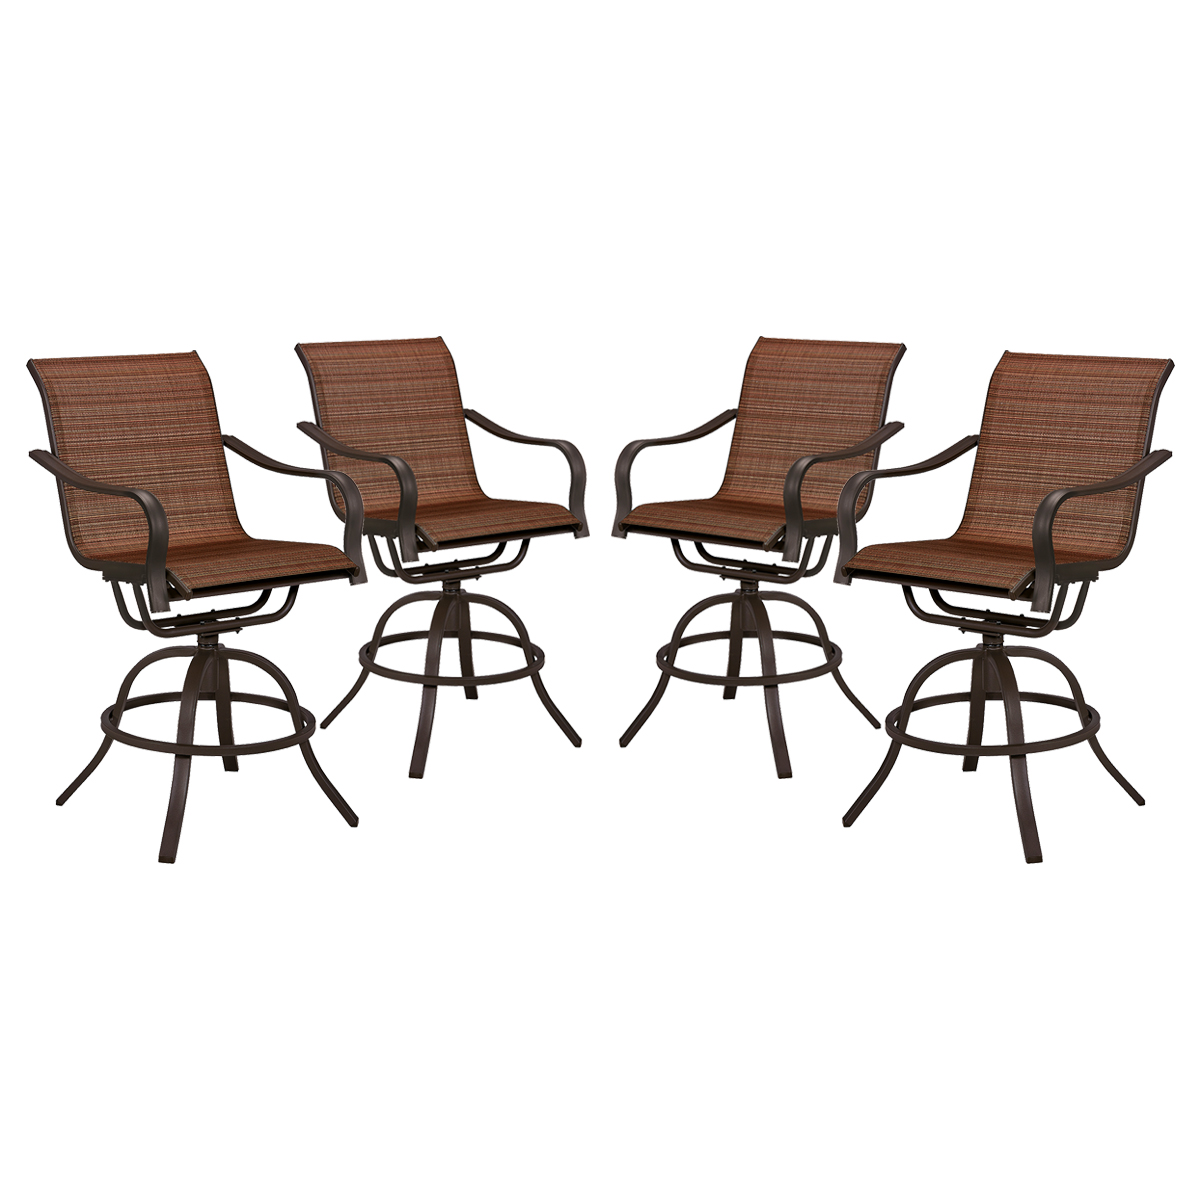 Kmart Dining Chairs Jaclyn Smith Marion 4 High Dining Chairs Limited